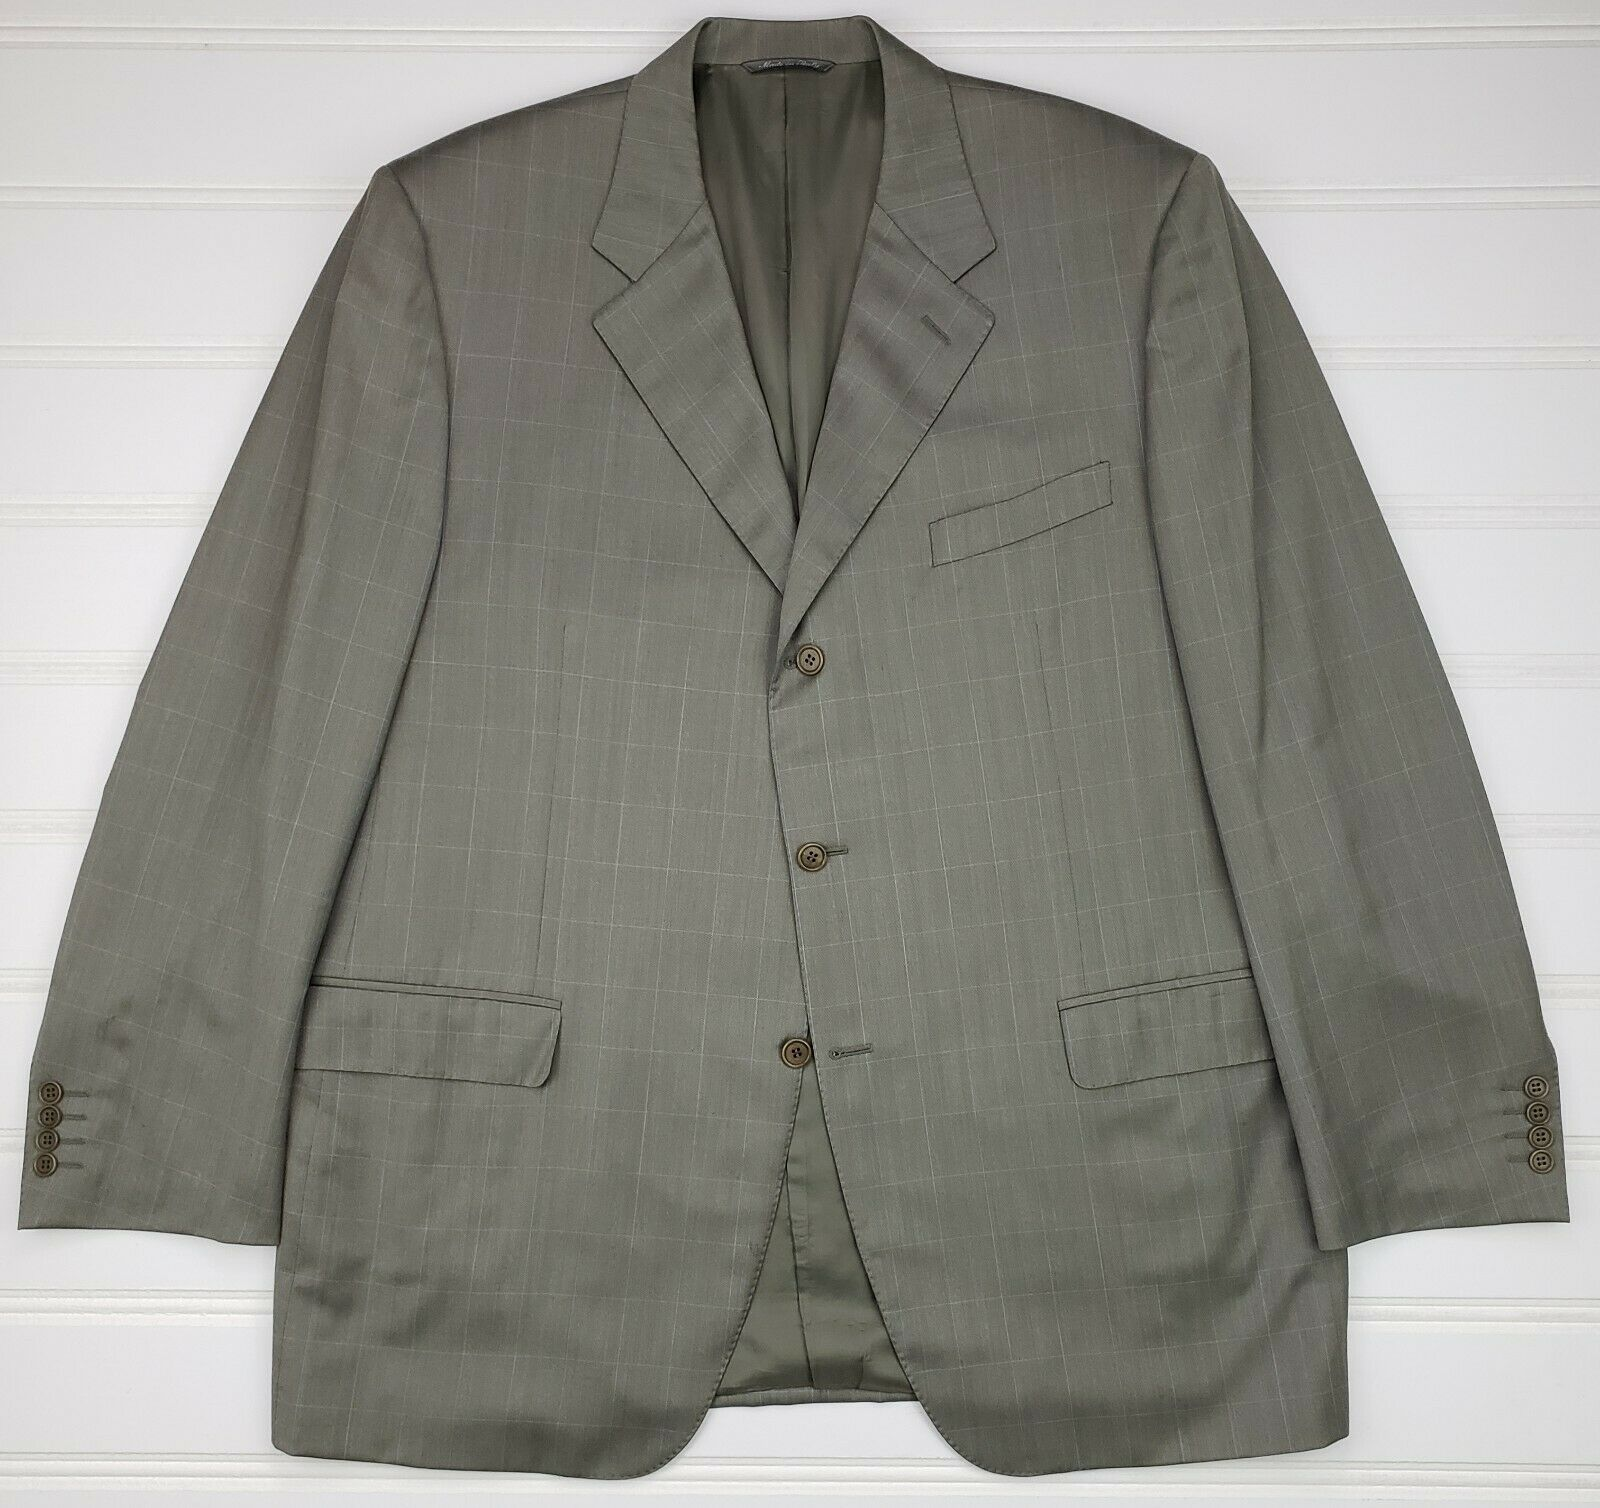 Canali Sport Coat 50L Green bluee Windowpane 3 Button Mens Wool Lined Size